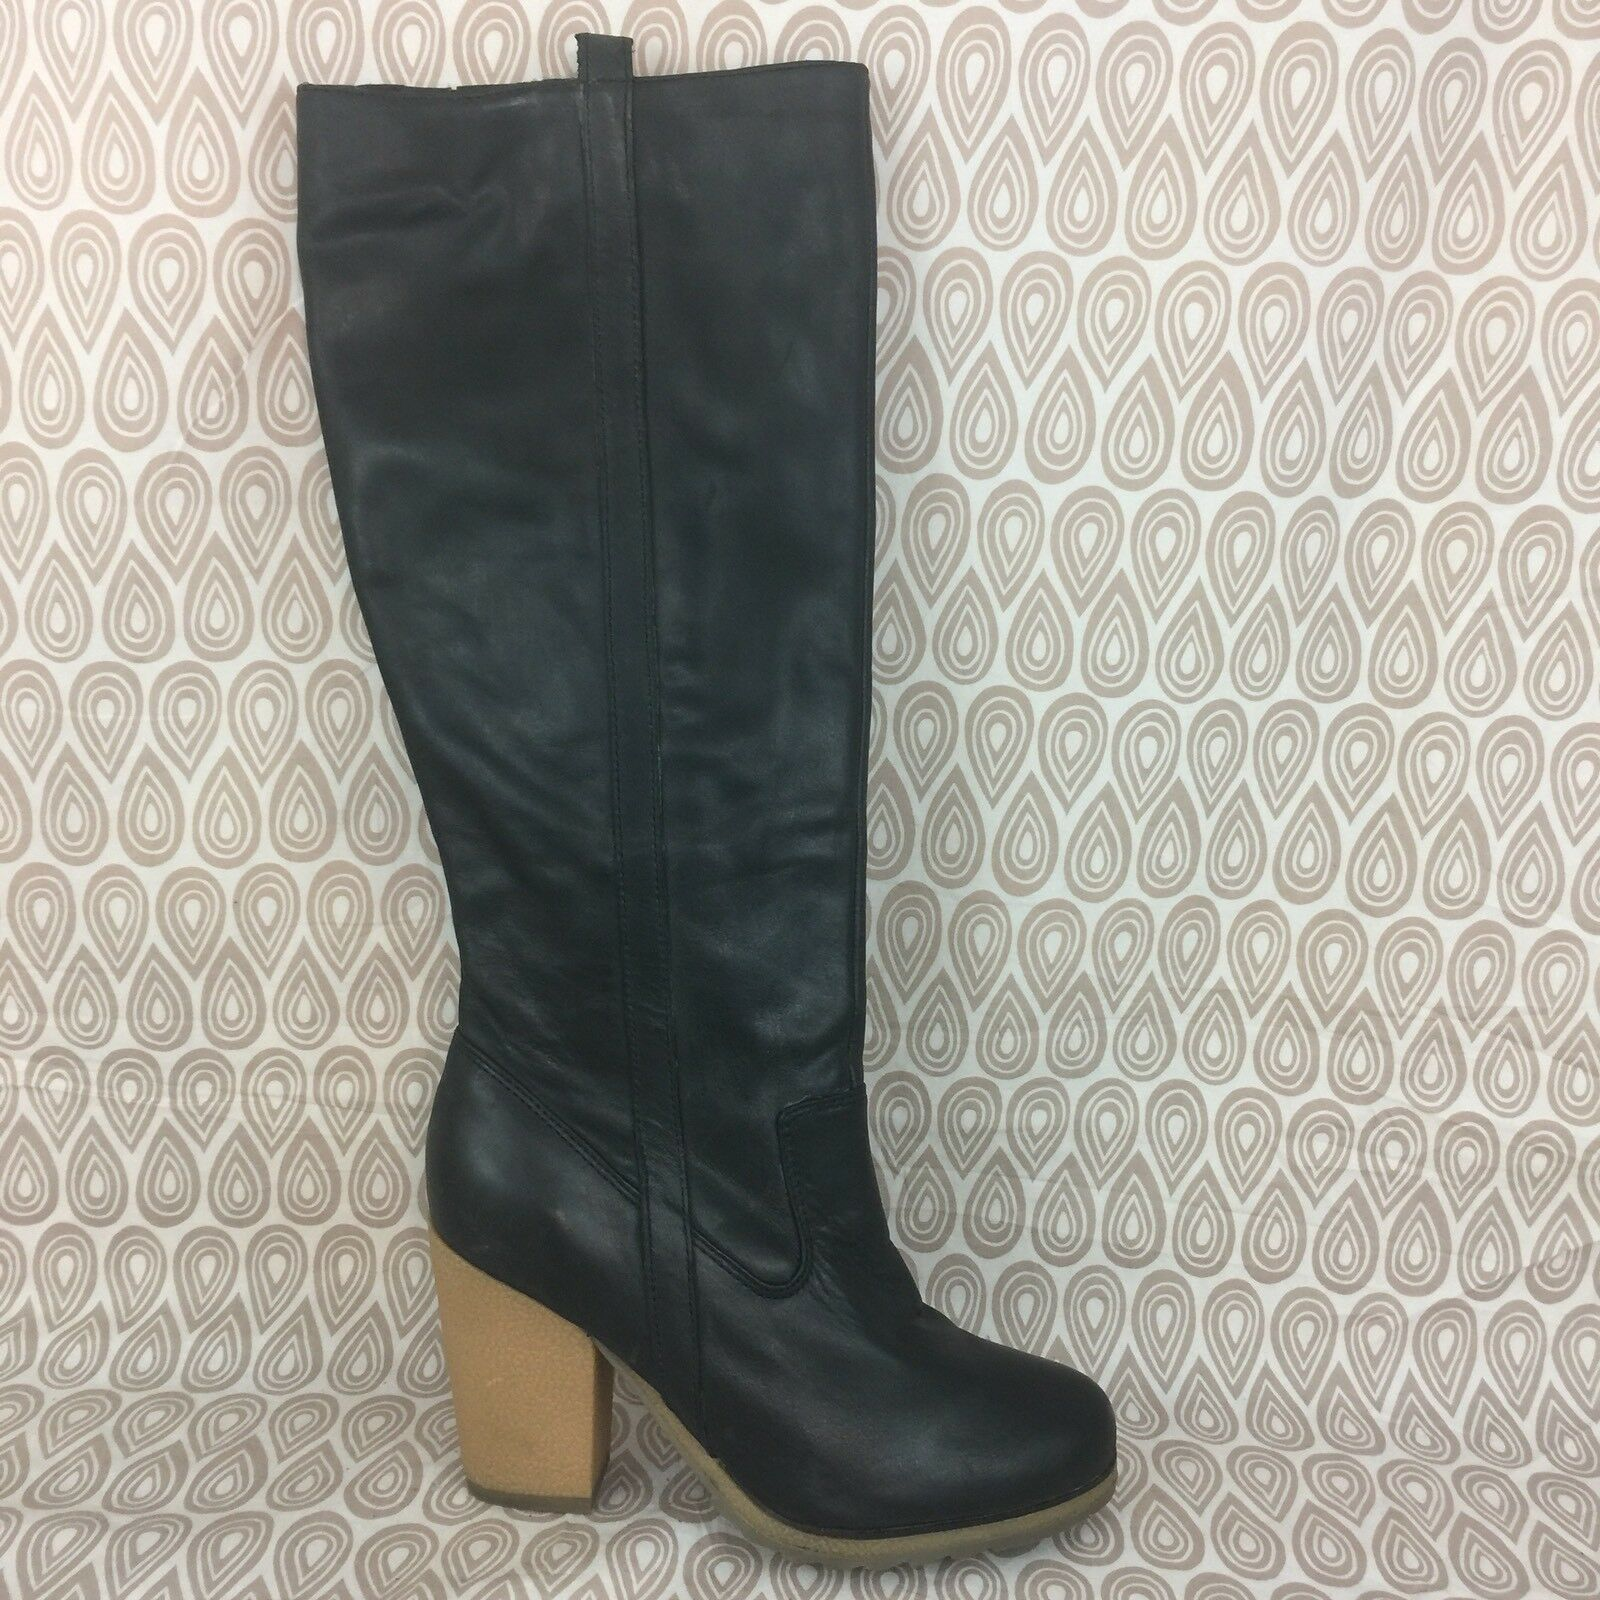 Me Too Maxine Knee High Block M Heel Boot Size 7.5 M Block Black Leather Side Zip S334 8233a8